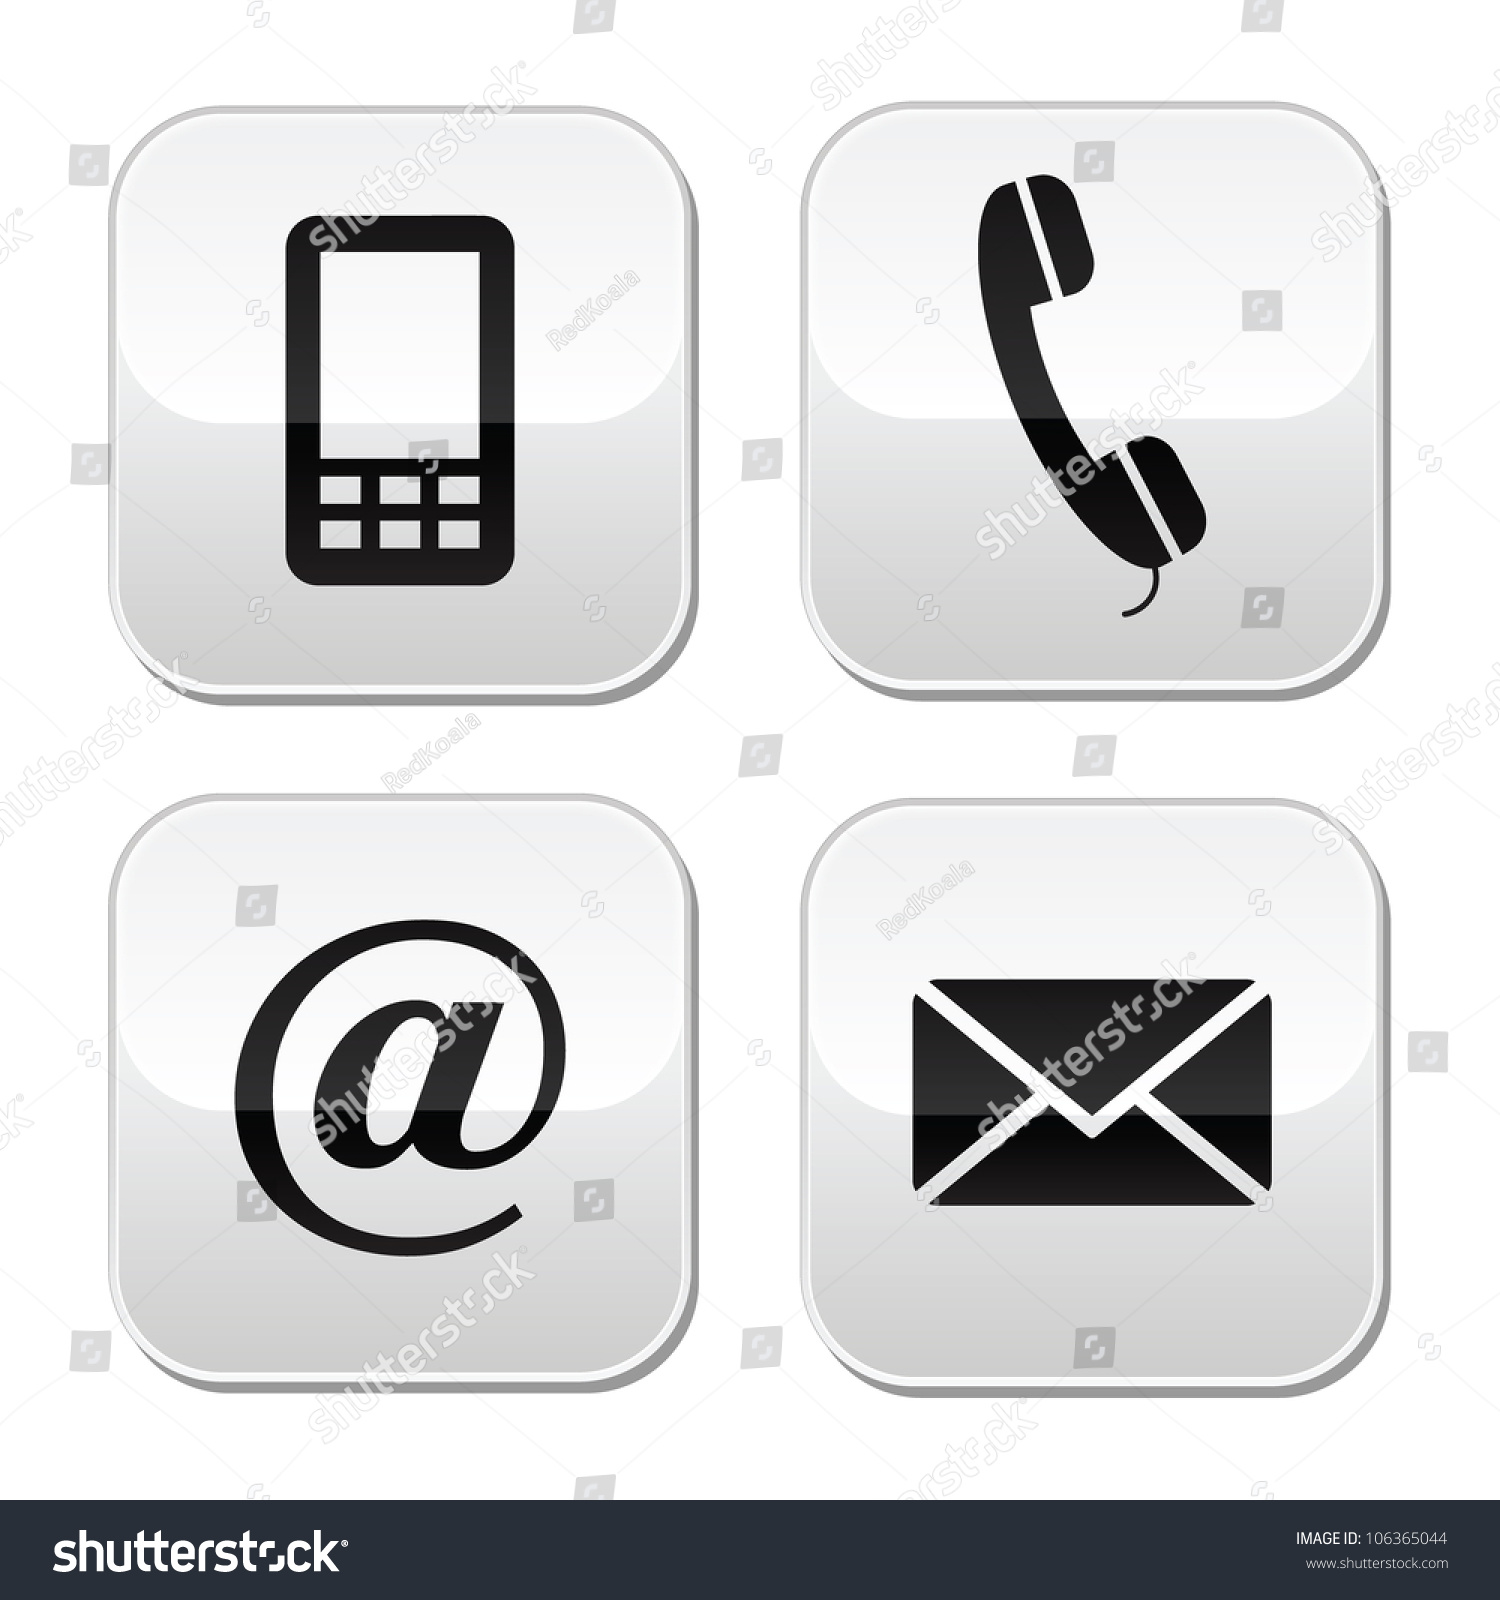 Contact Buttons Set Email Envelope Phone Stock Vector 106365044 ...